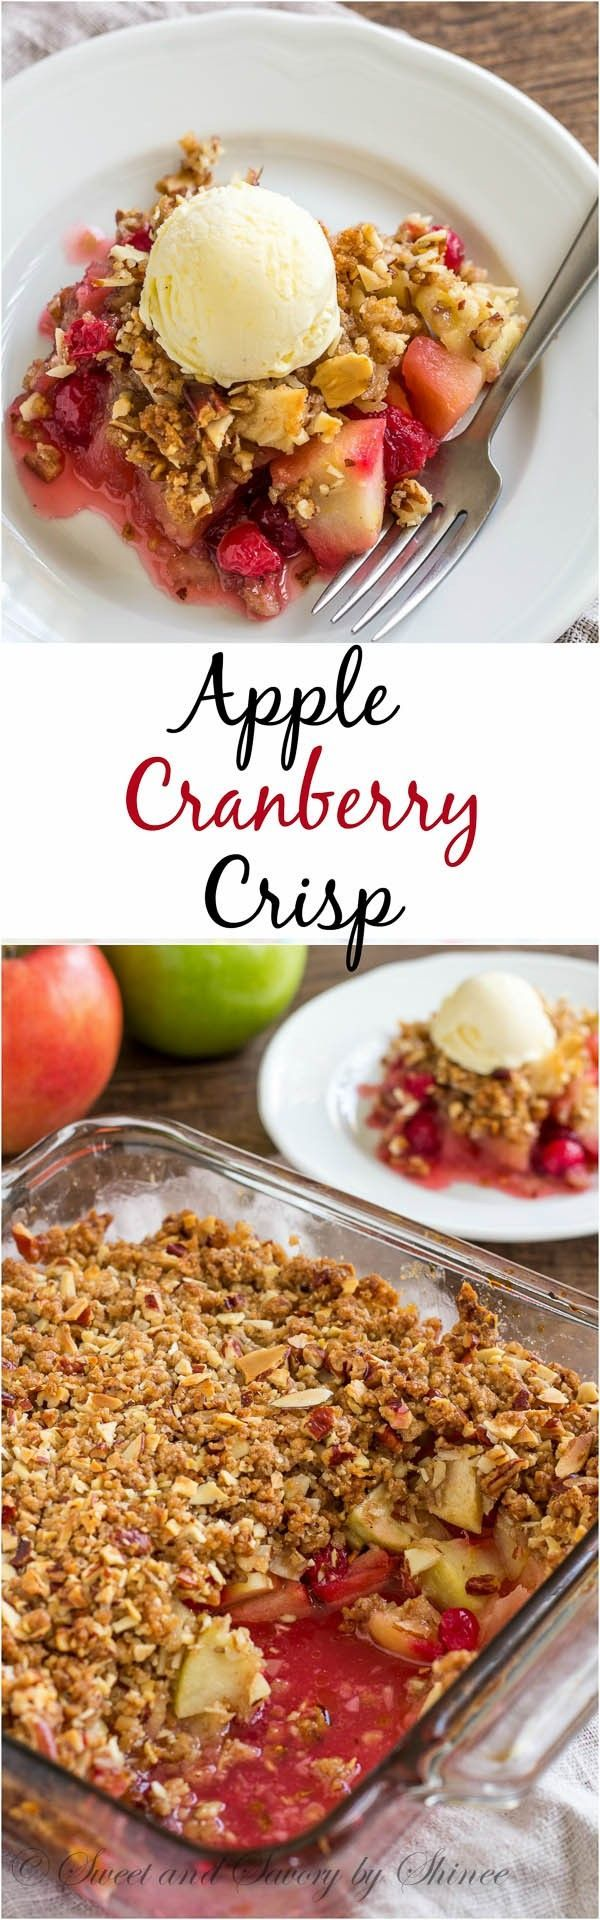 Apple cranberry crisp- Fall calls for comfort food. And what's better than warm apple cranberry crisp with nutty, crunchy crumbs and sweet n' tart apple cranberry filling?